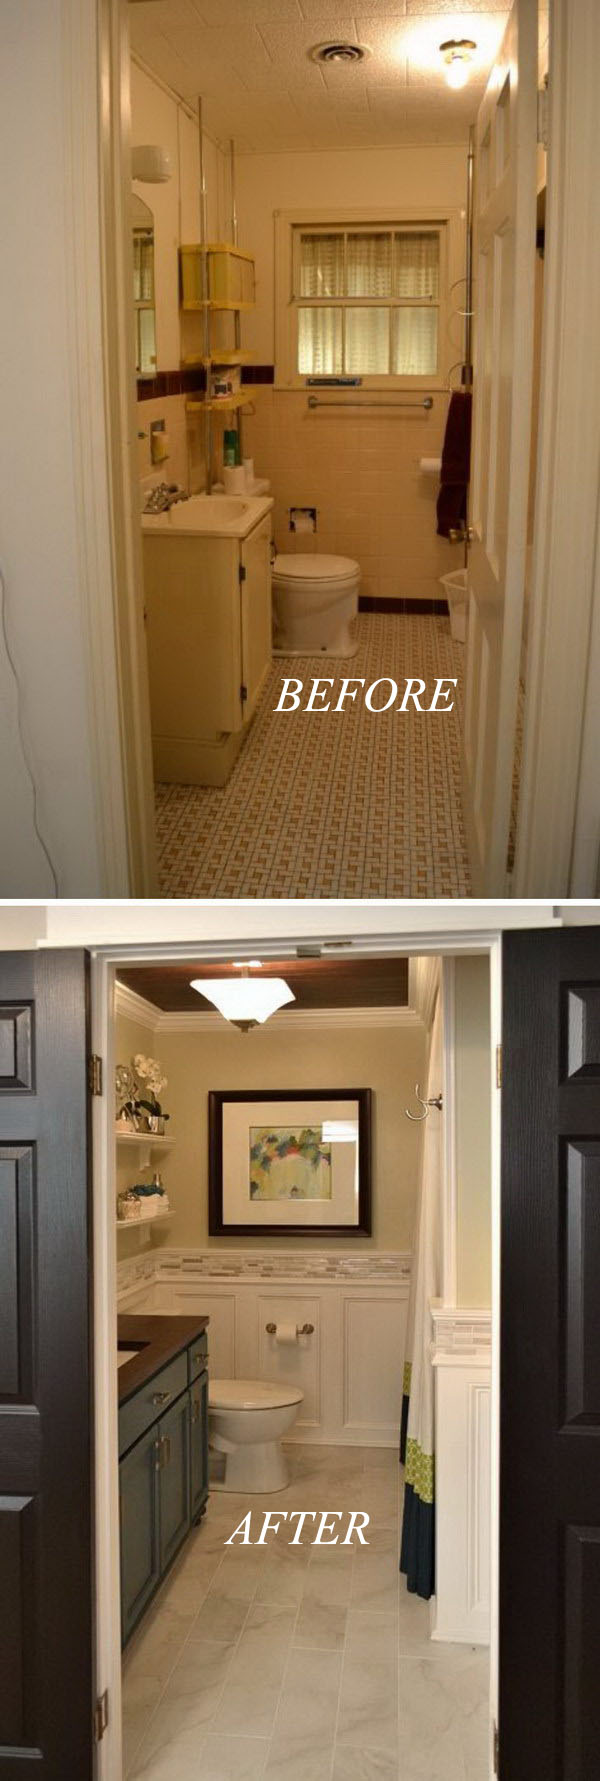 Hallway Small Bathroom Remodel Before After